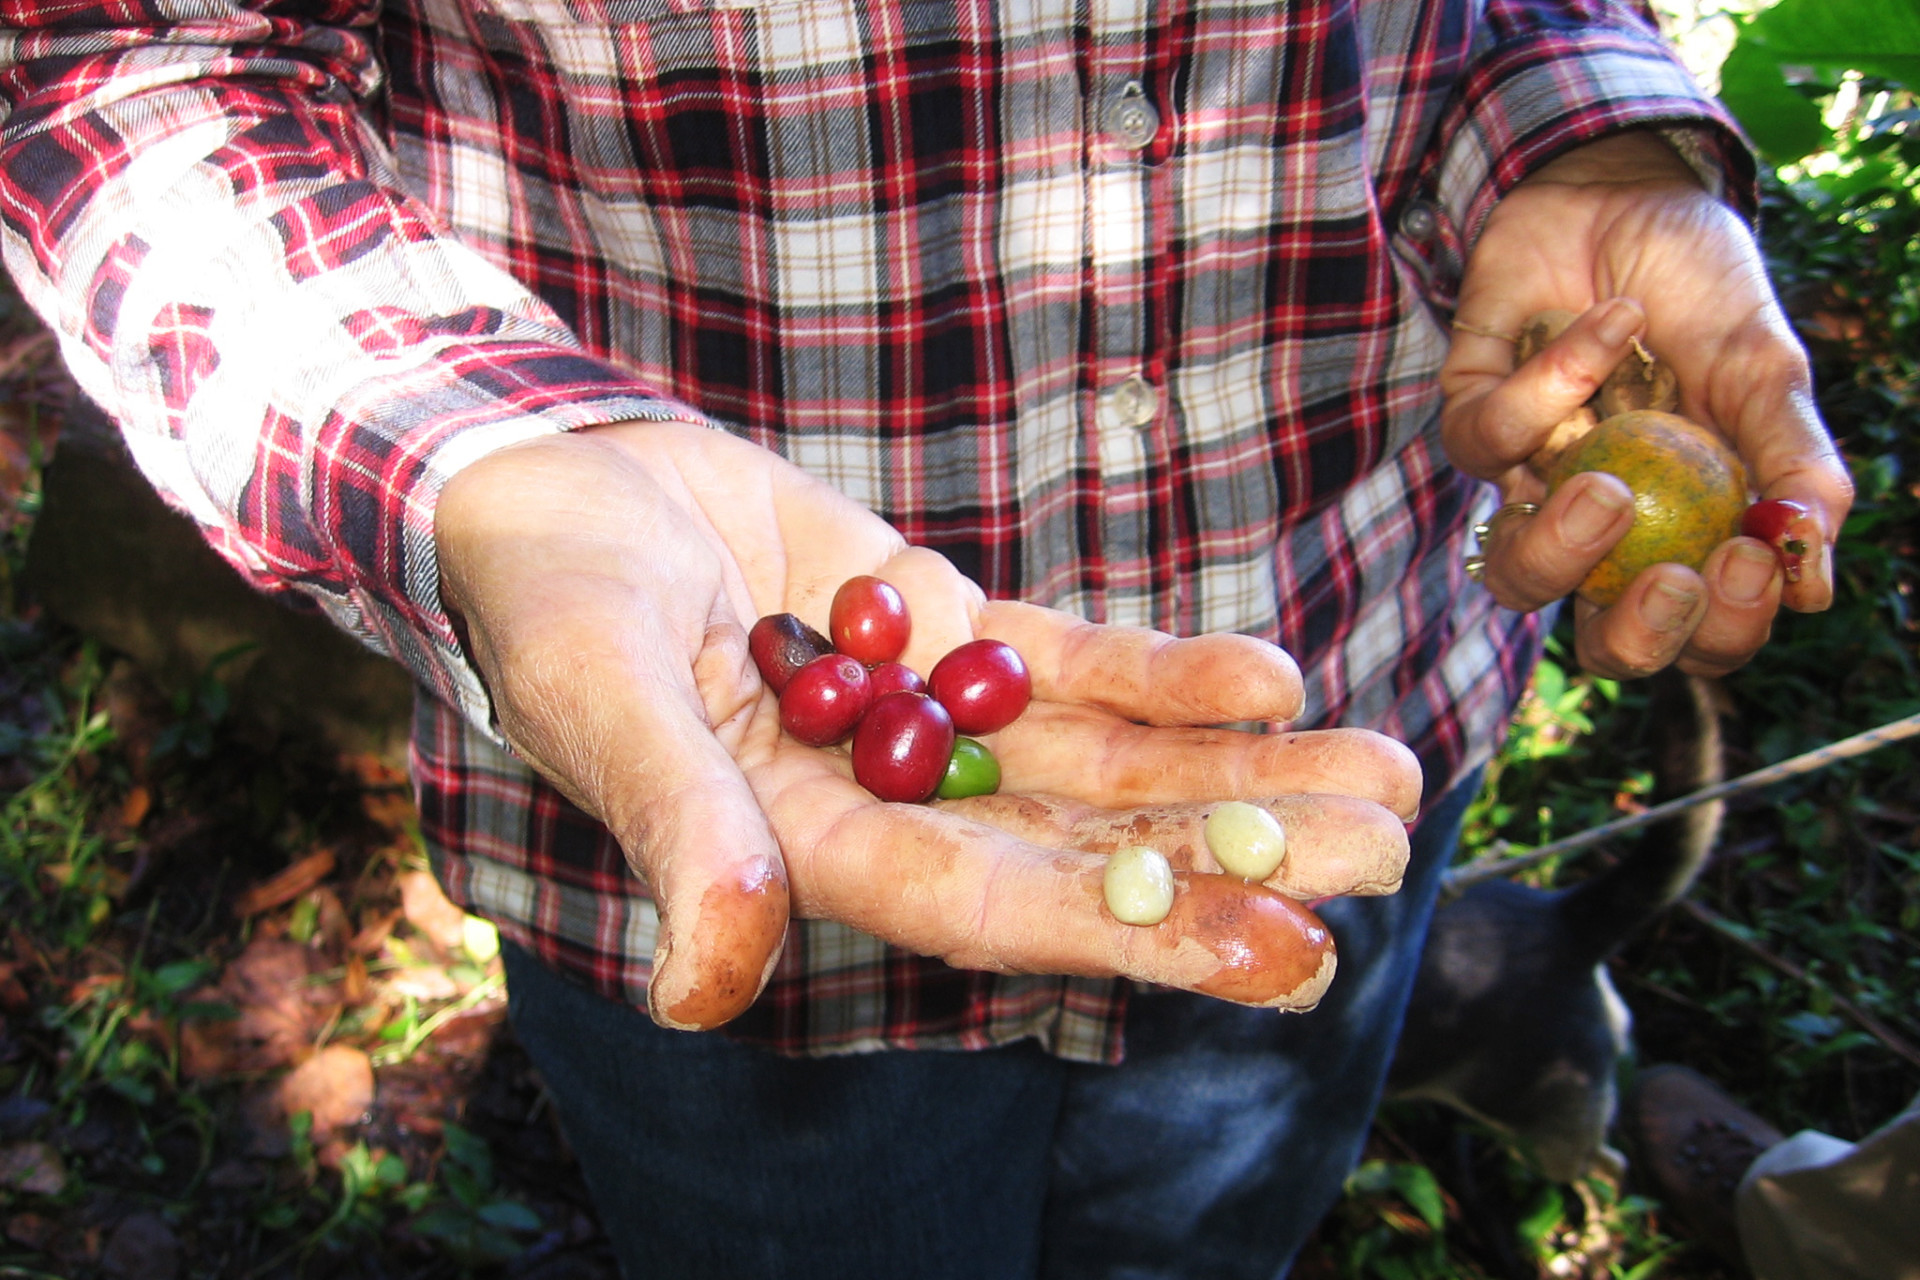 Elena Biamon holds coffee berries grown on her farm near Jayuya, a town in Puerto Rico's mountainous interior.